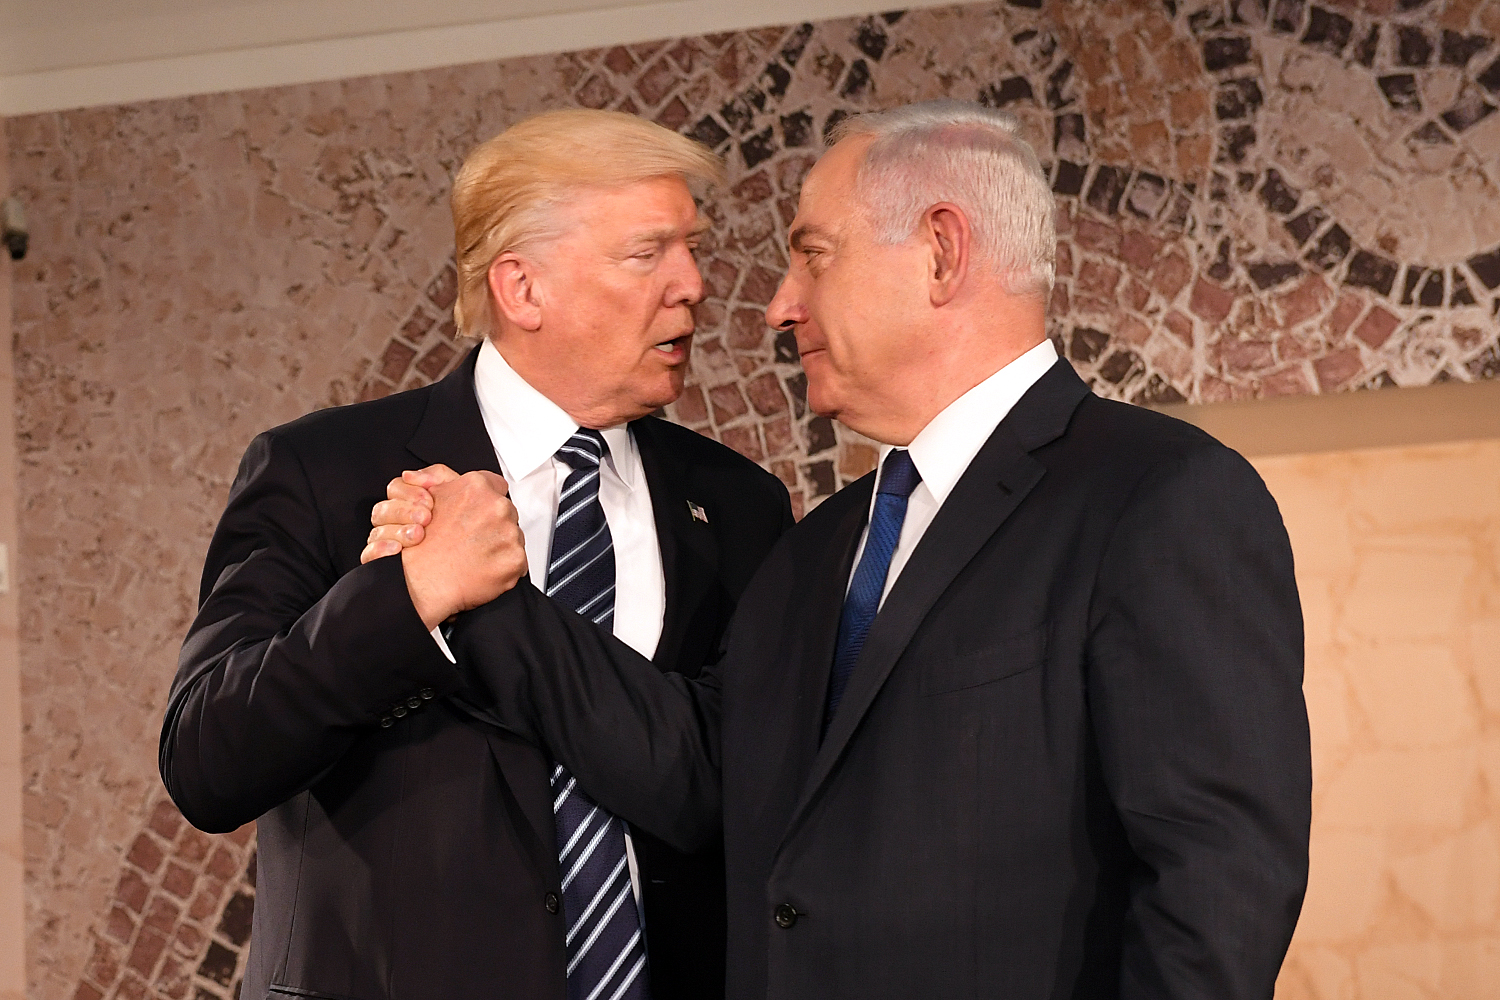 Benjamin Netanyahu with US President Trump at the Israel Museum, Jerusalem on May 23 2017 (photo by  US Embassy Tel Aviv)